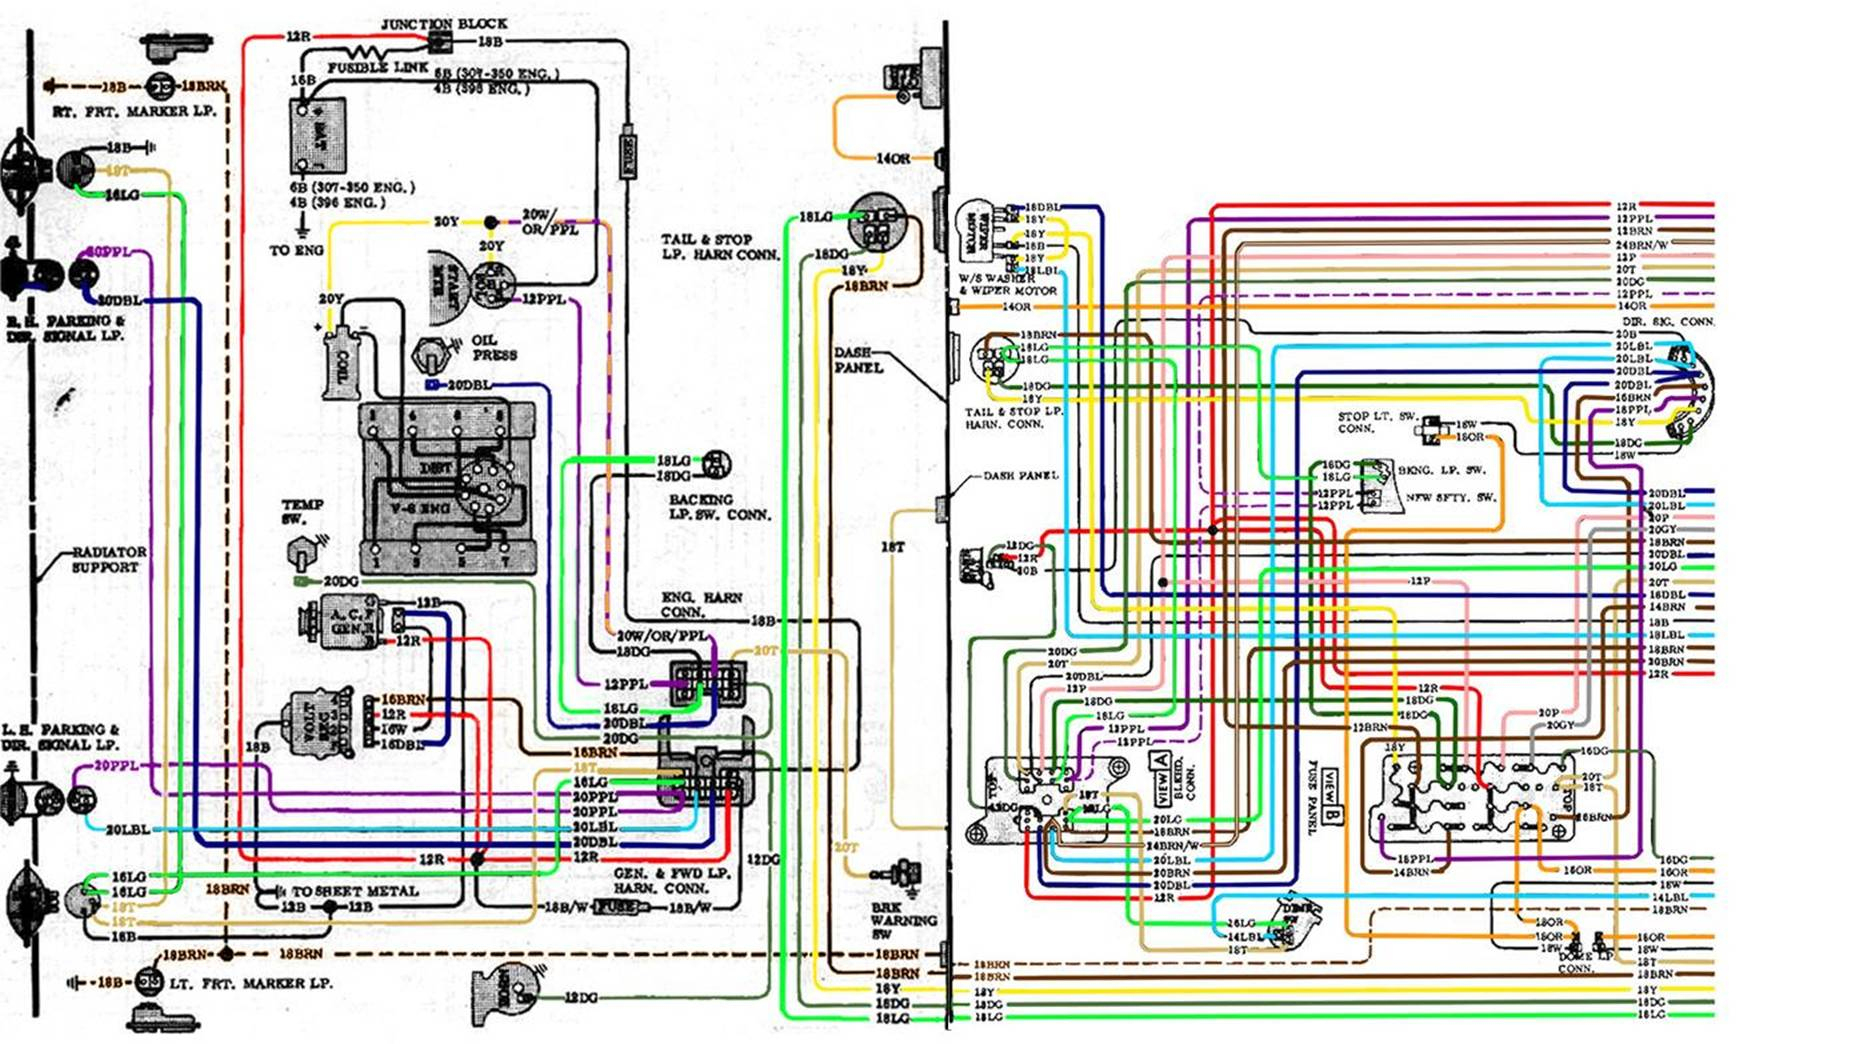 1966 Chevy Ii Wiring Diagram | Wiring Library - Painless Wiring Diagram